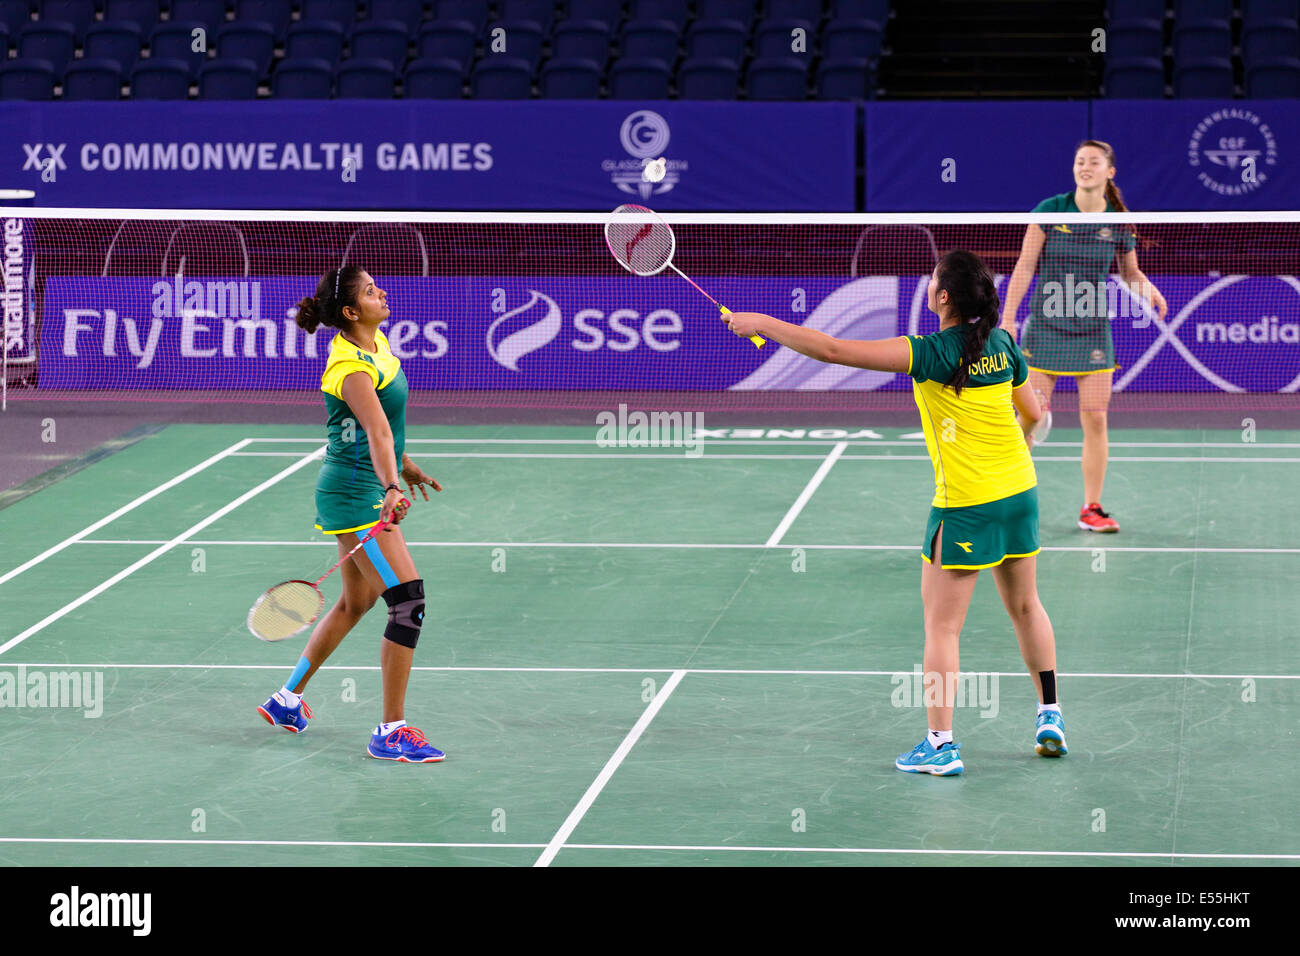 Glasgow, Scotland, UK. 21st July, 2014. Team Australia training at the Emirates Arena the venue for the Glasgow - Stock Image